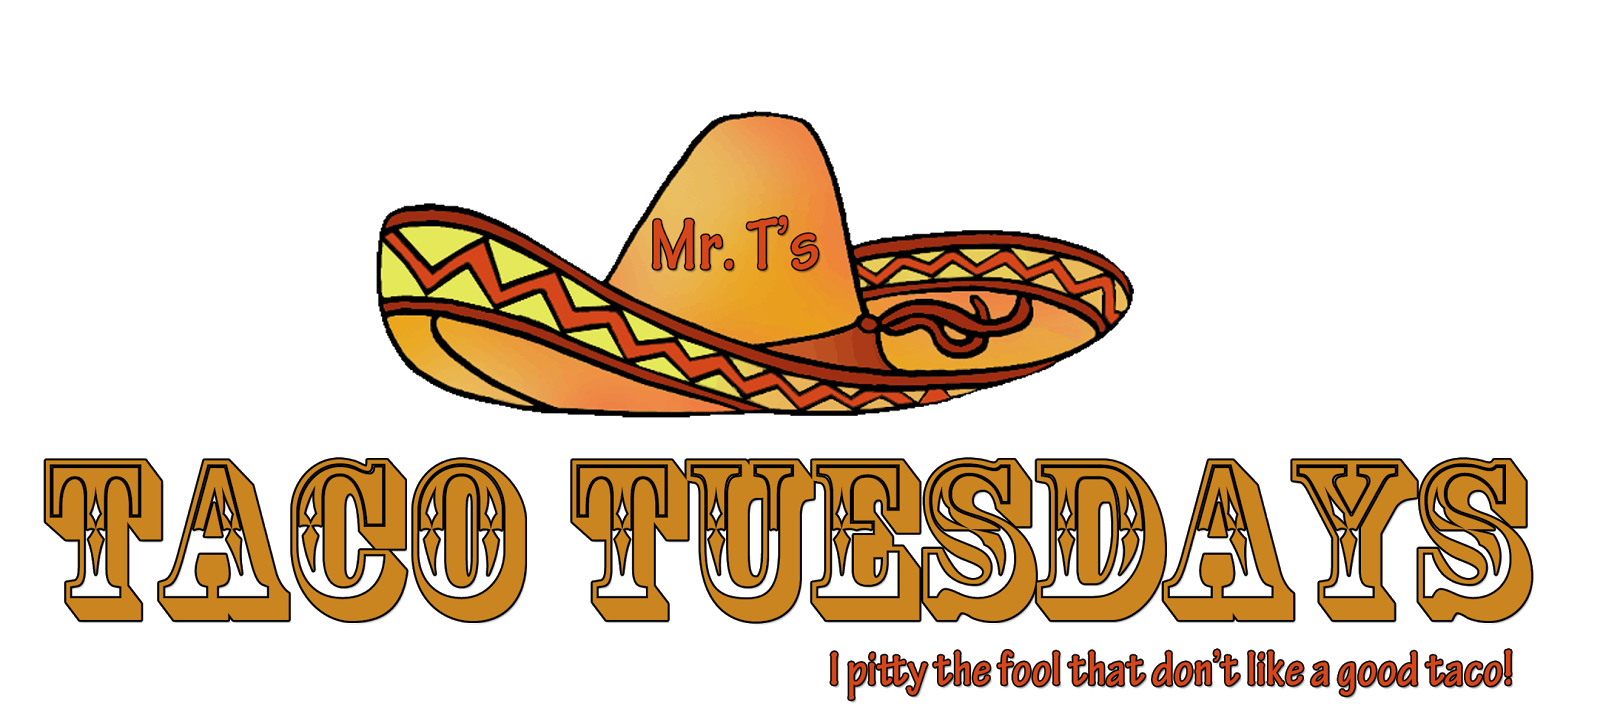 Fish taco clipart vector library stock Mr. T's Taco Tuesdays: Something Fishy about these tacos... vector library stock